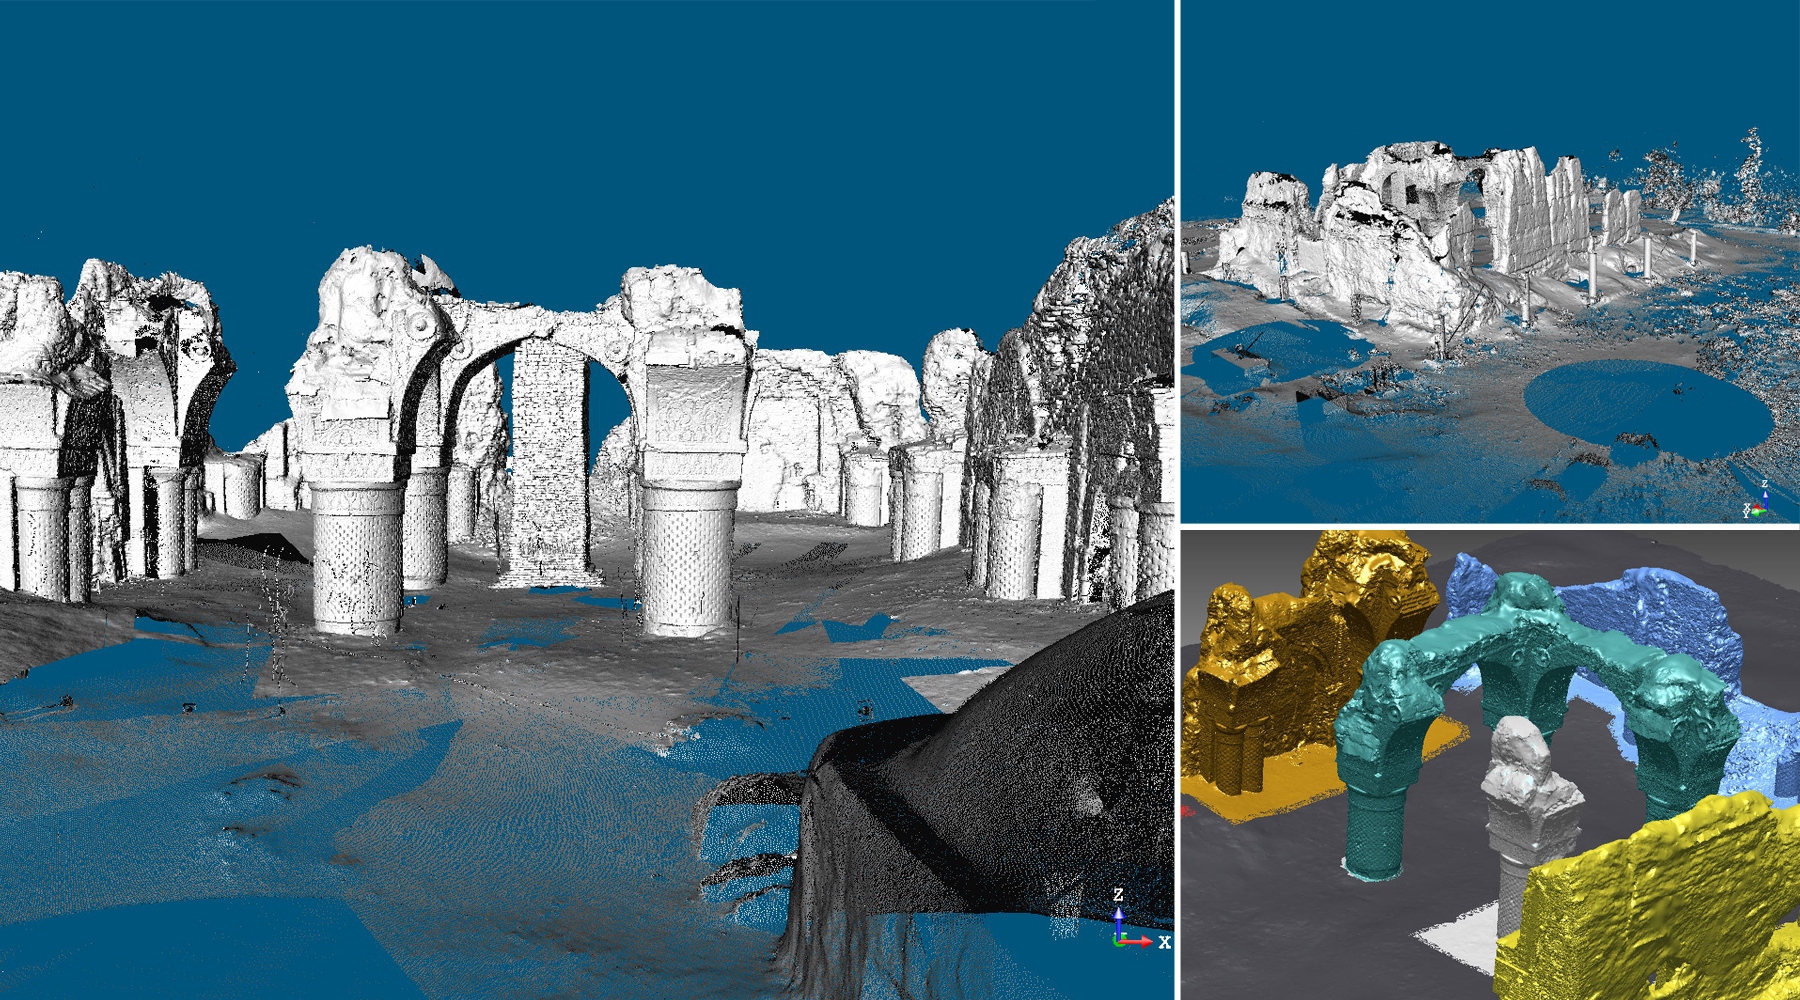 11 Mosque of Haji Piada, Afghanistan - Point cloud and 3D mesh